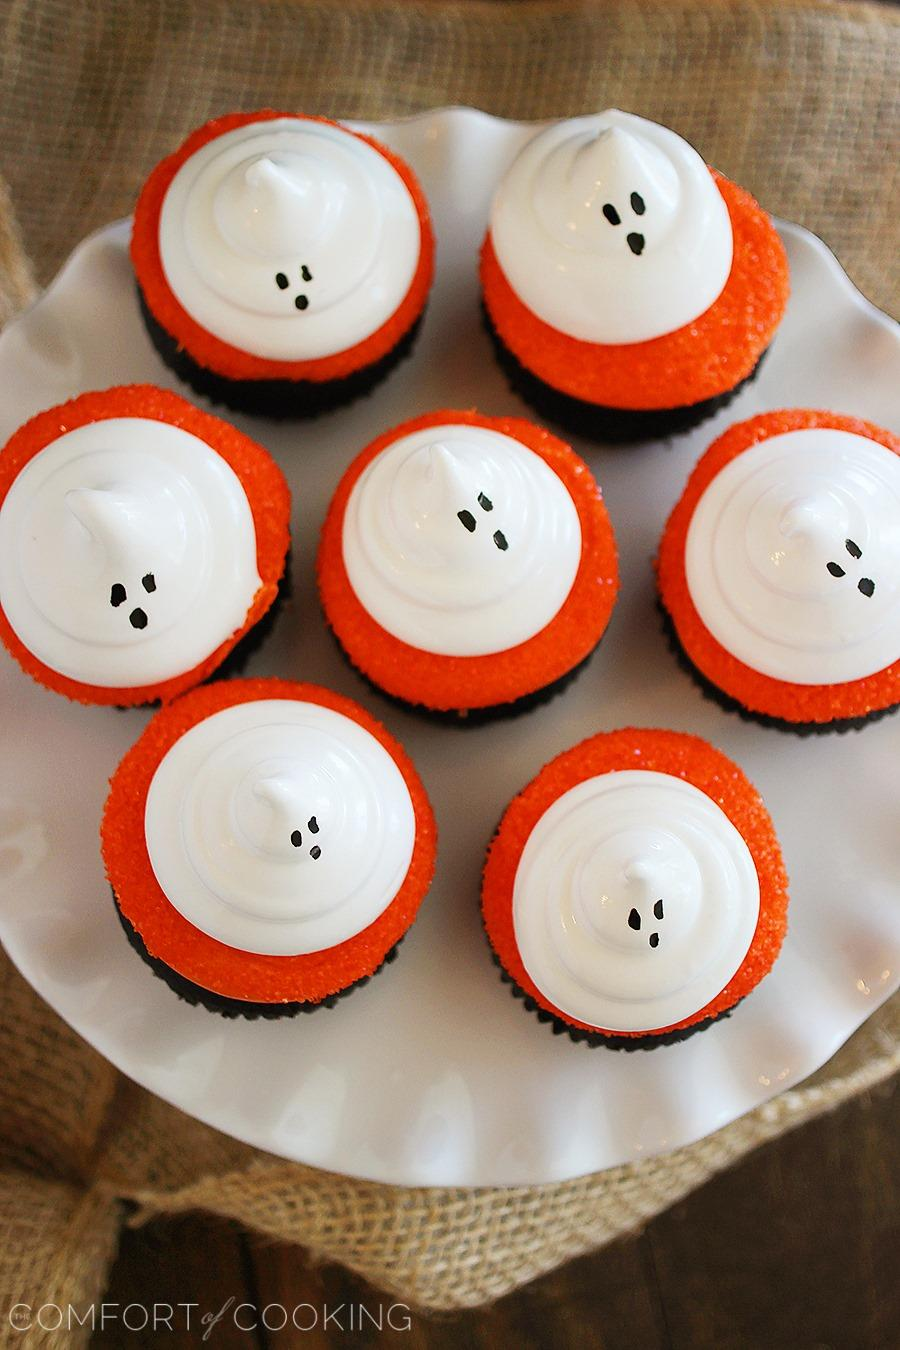 What says halloween more than chocolate and ghosts?